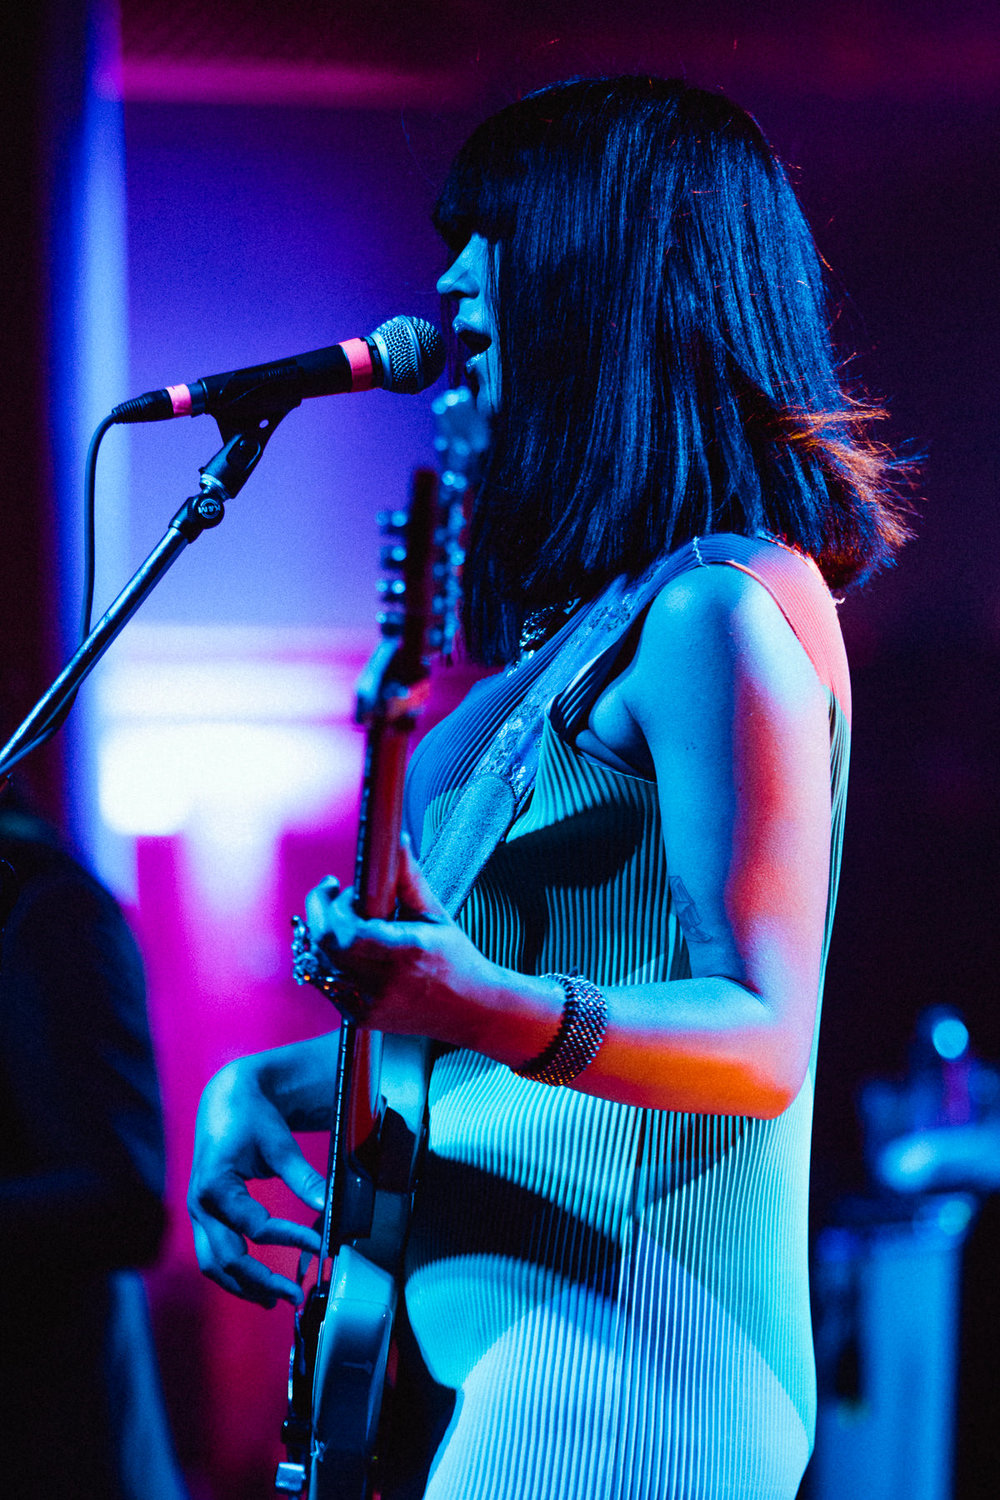 180326-kirby-gladstein-photograpy-khruangbin-concert-lodge-room-los-angeles-2622.jpg